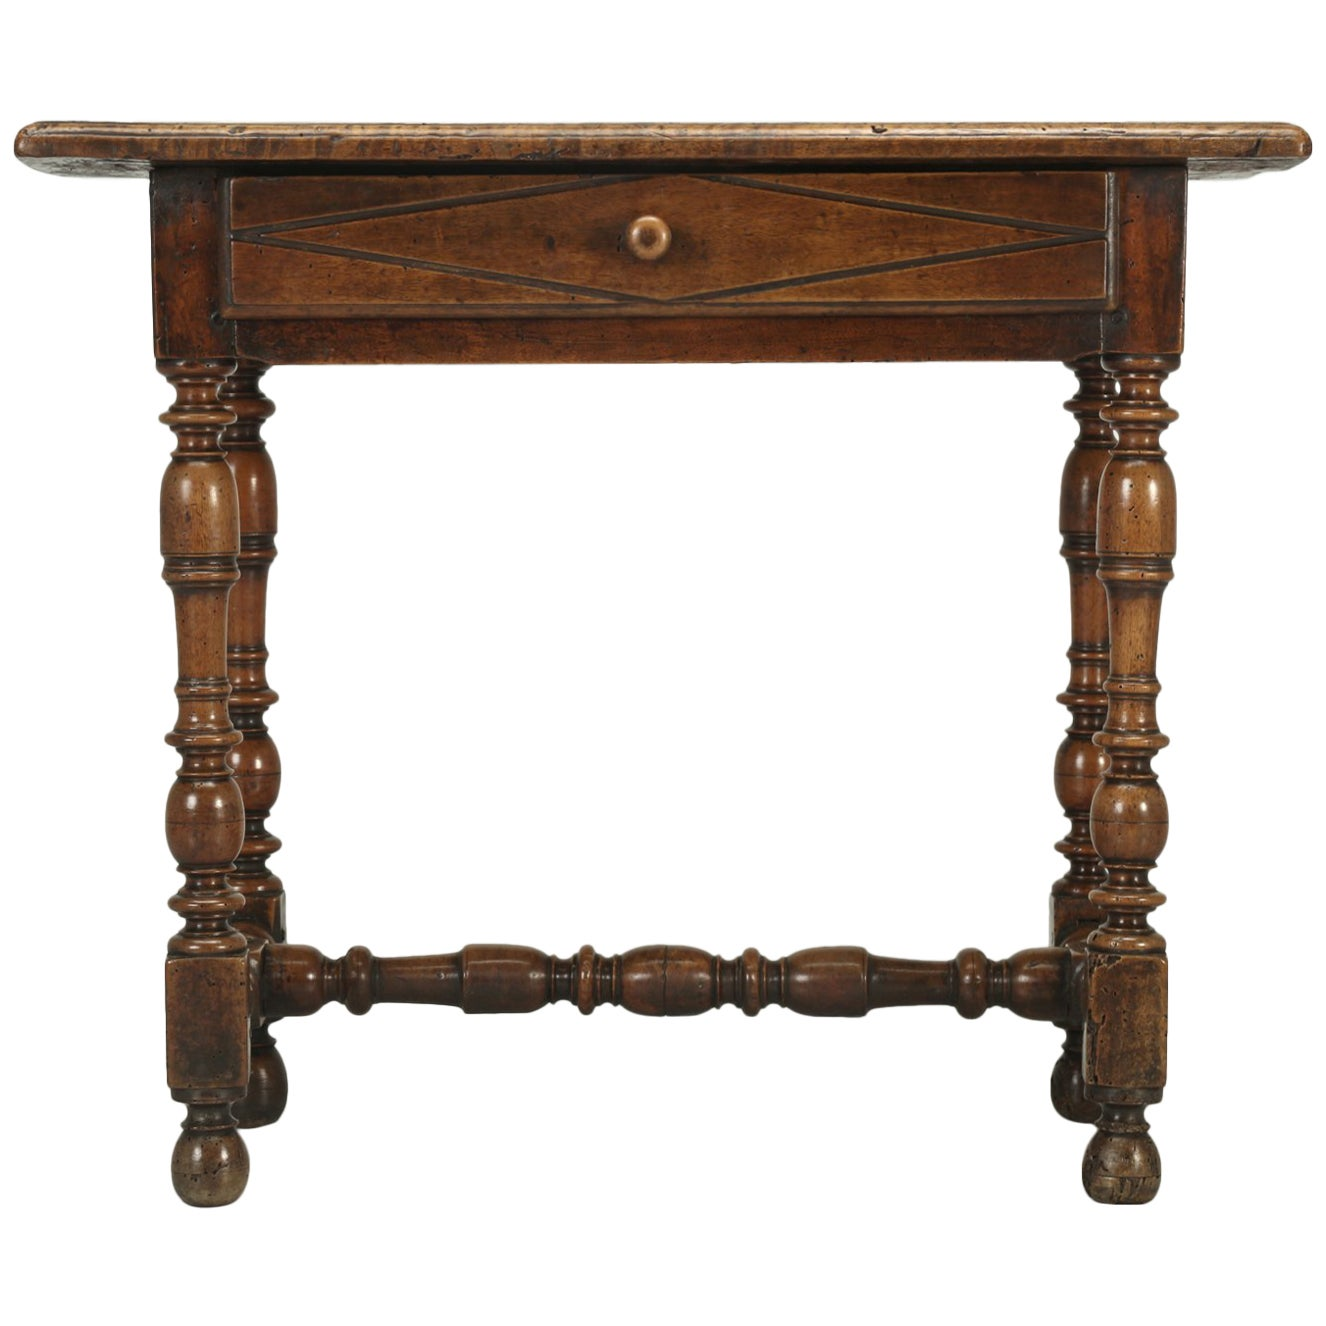 Antique Country French Side or End Table from the Early 1700s